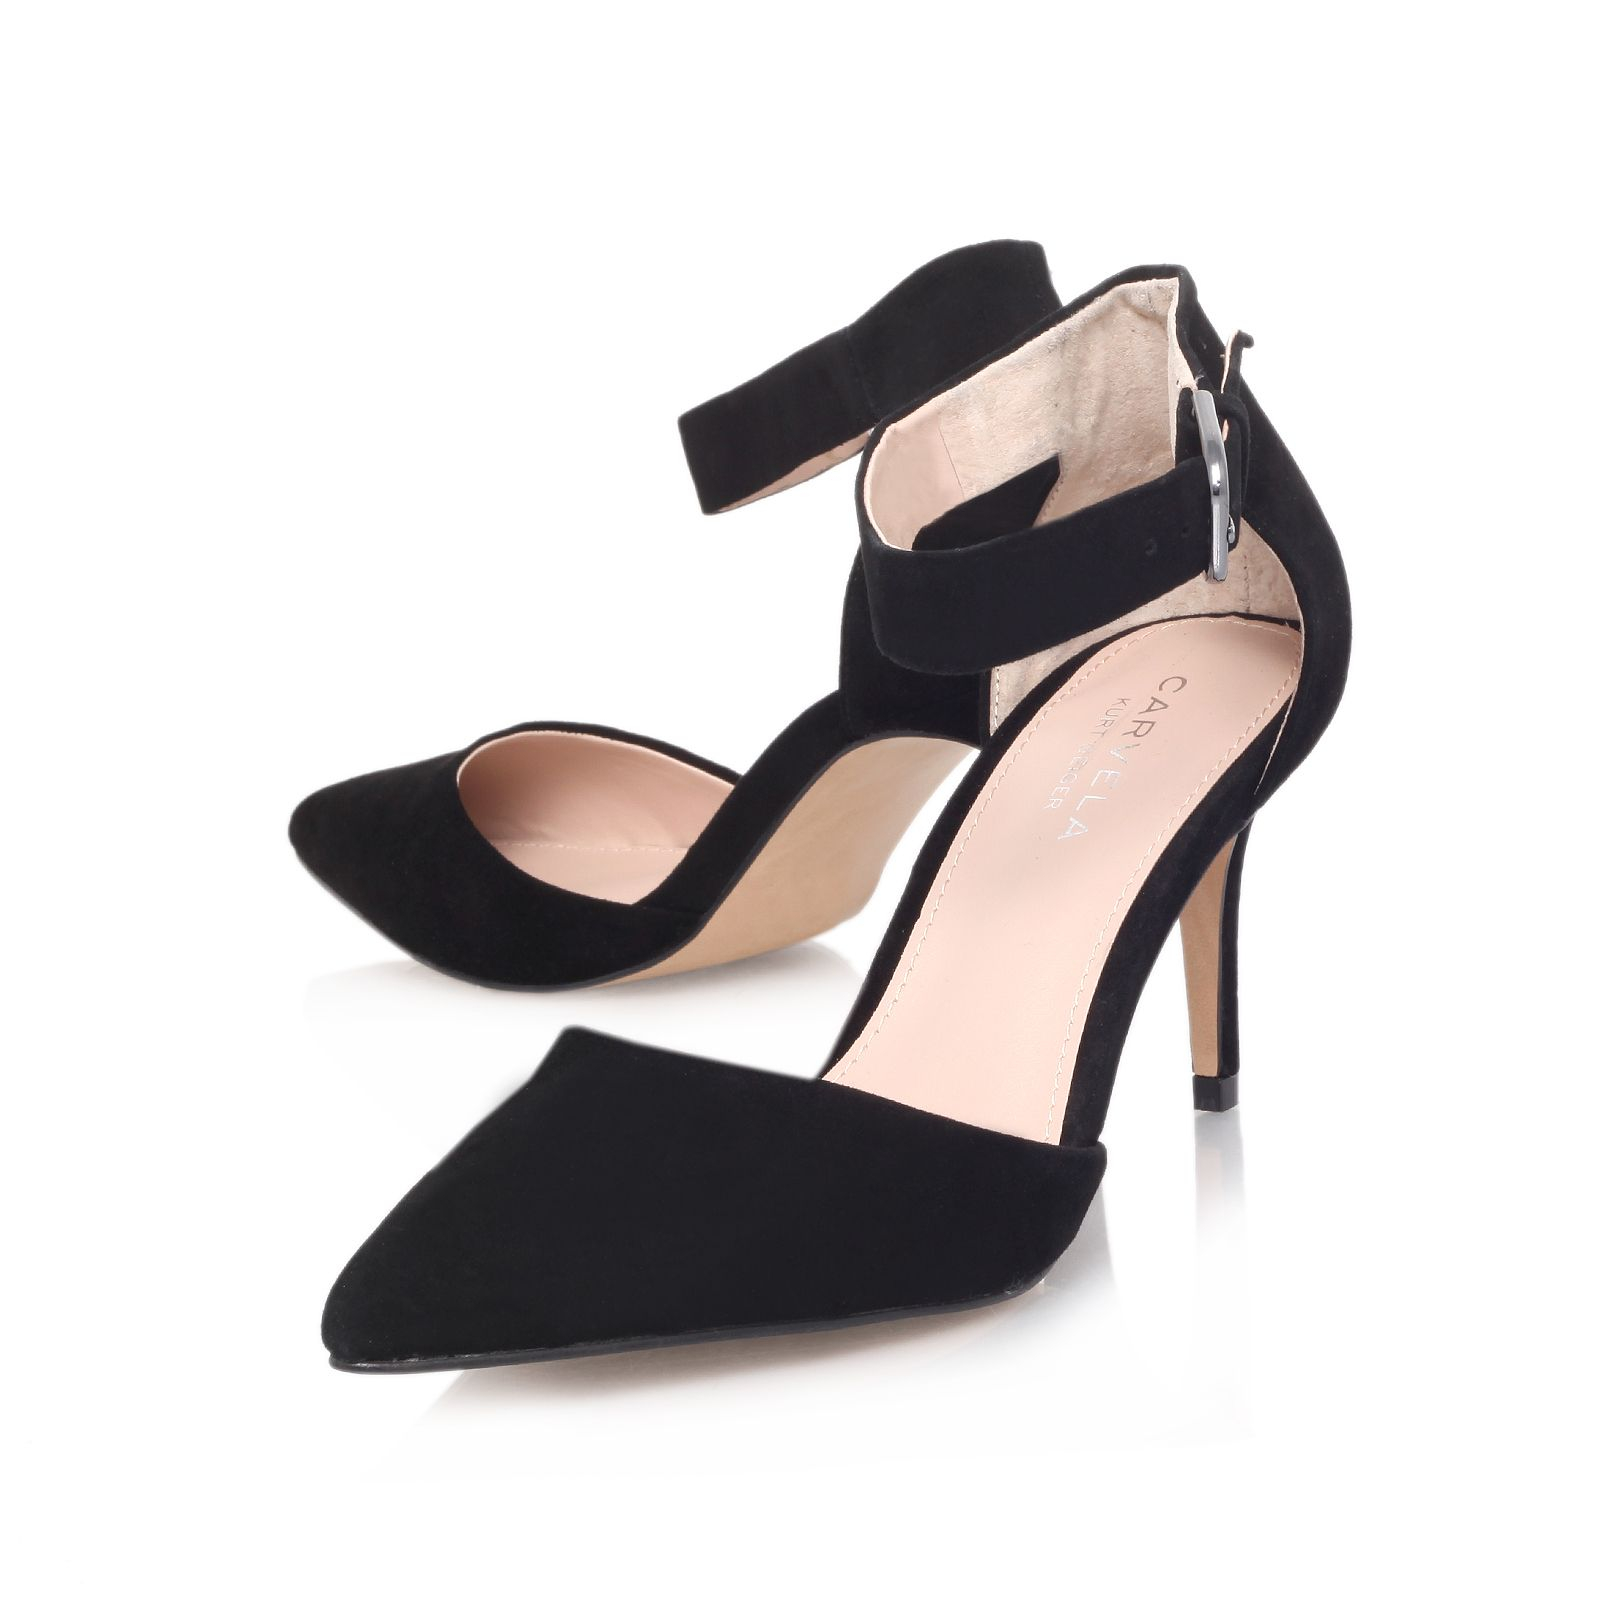 Carvela kurt geiger Argue Suede Pointed Mid Heel Ankle Strap Court ...